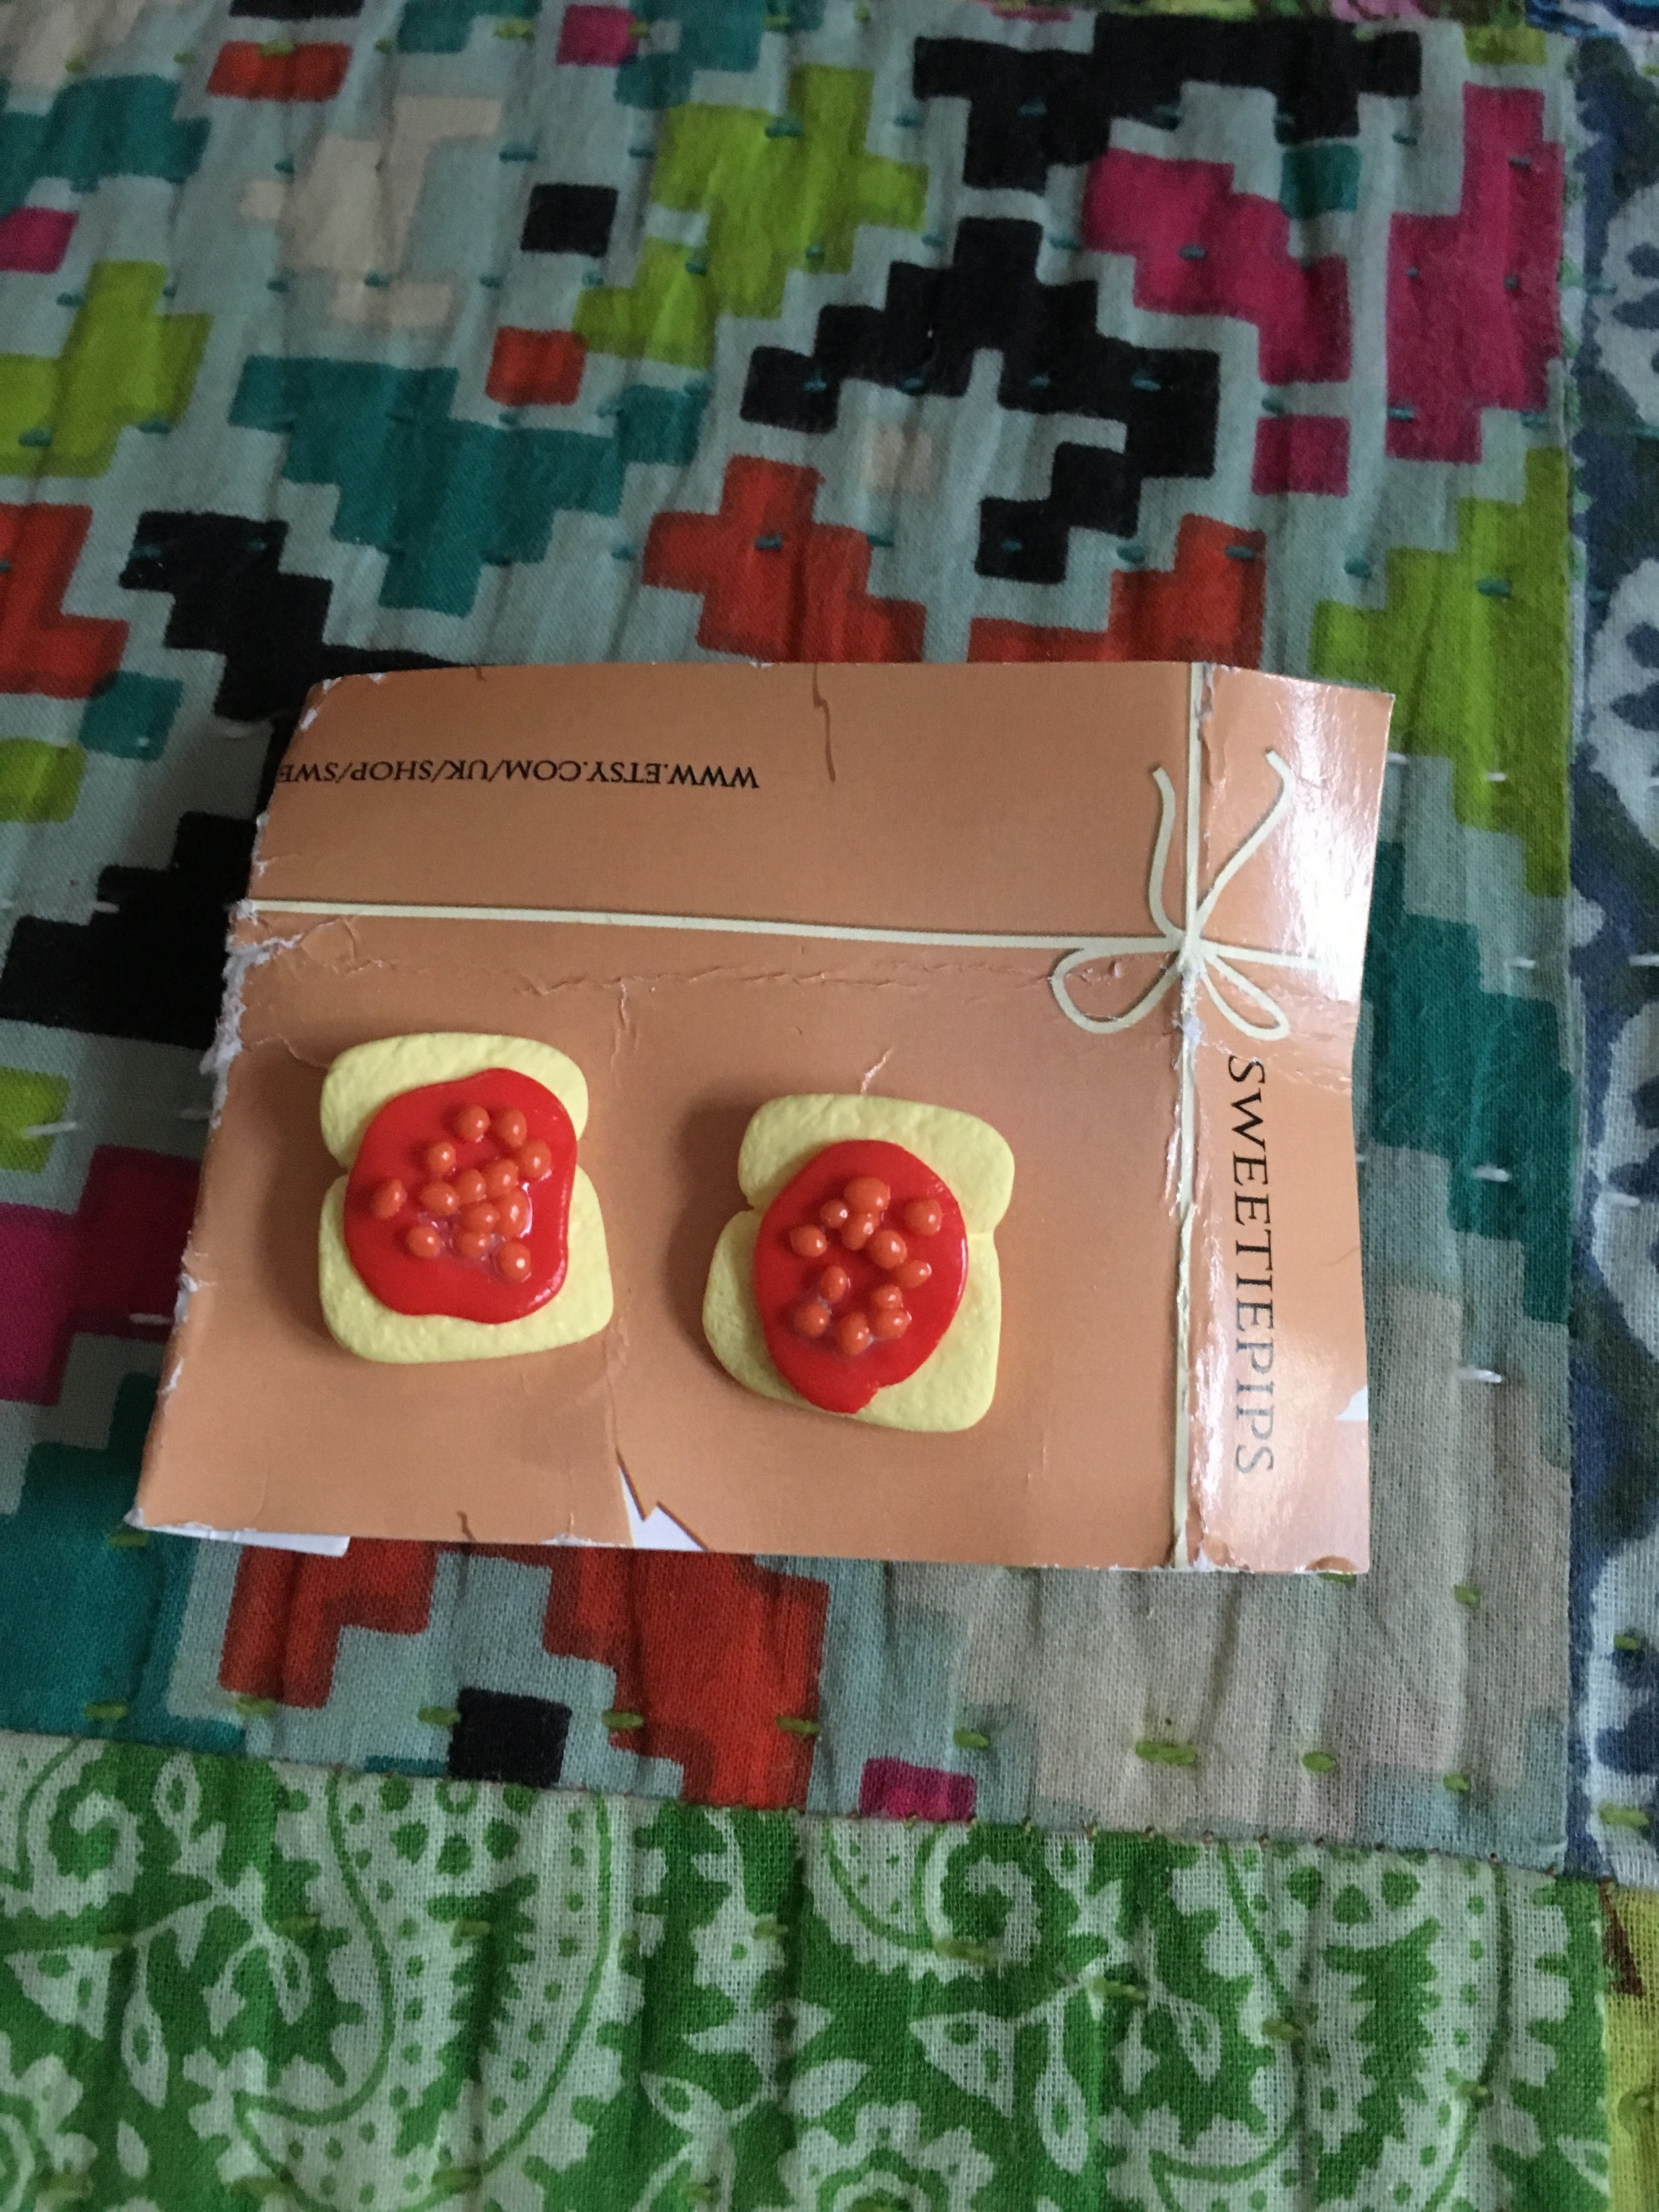 Day 2 - pair of baked beans on toast earrings from Sweetpips